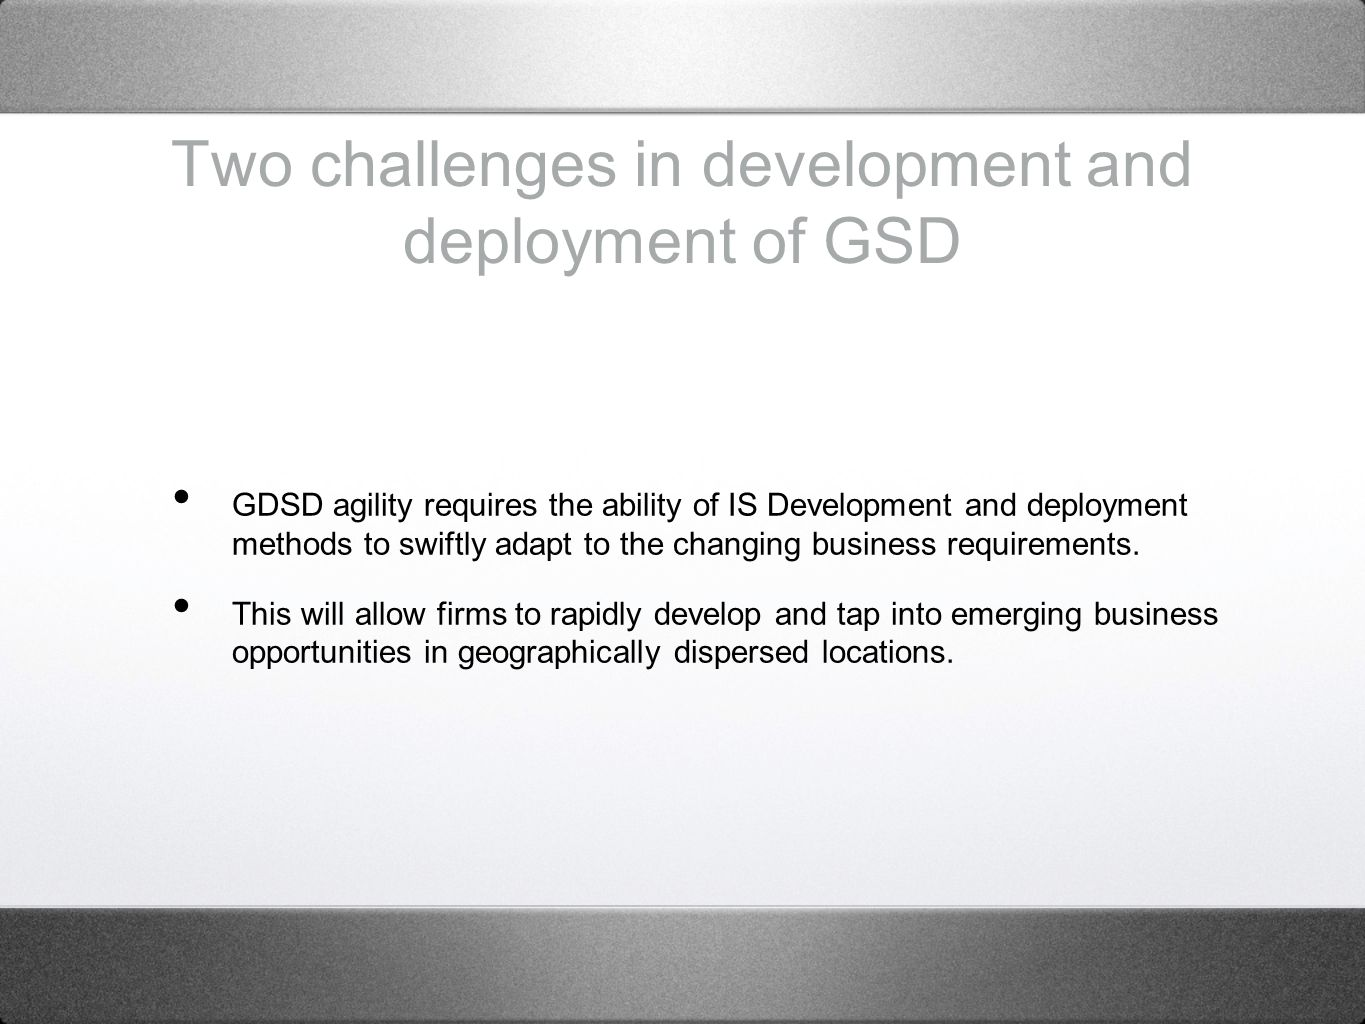 Two challenges in development and deployment of GSD GDSD agility requires the ability of IS Development and deployment methods to swiftly adapt to the changing business requirements.